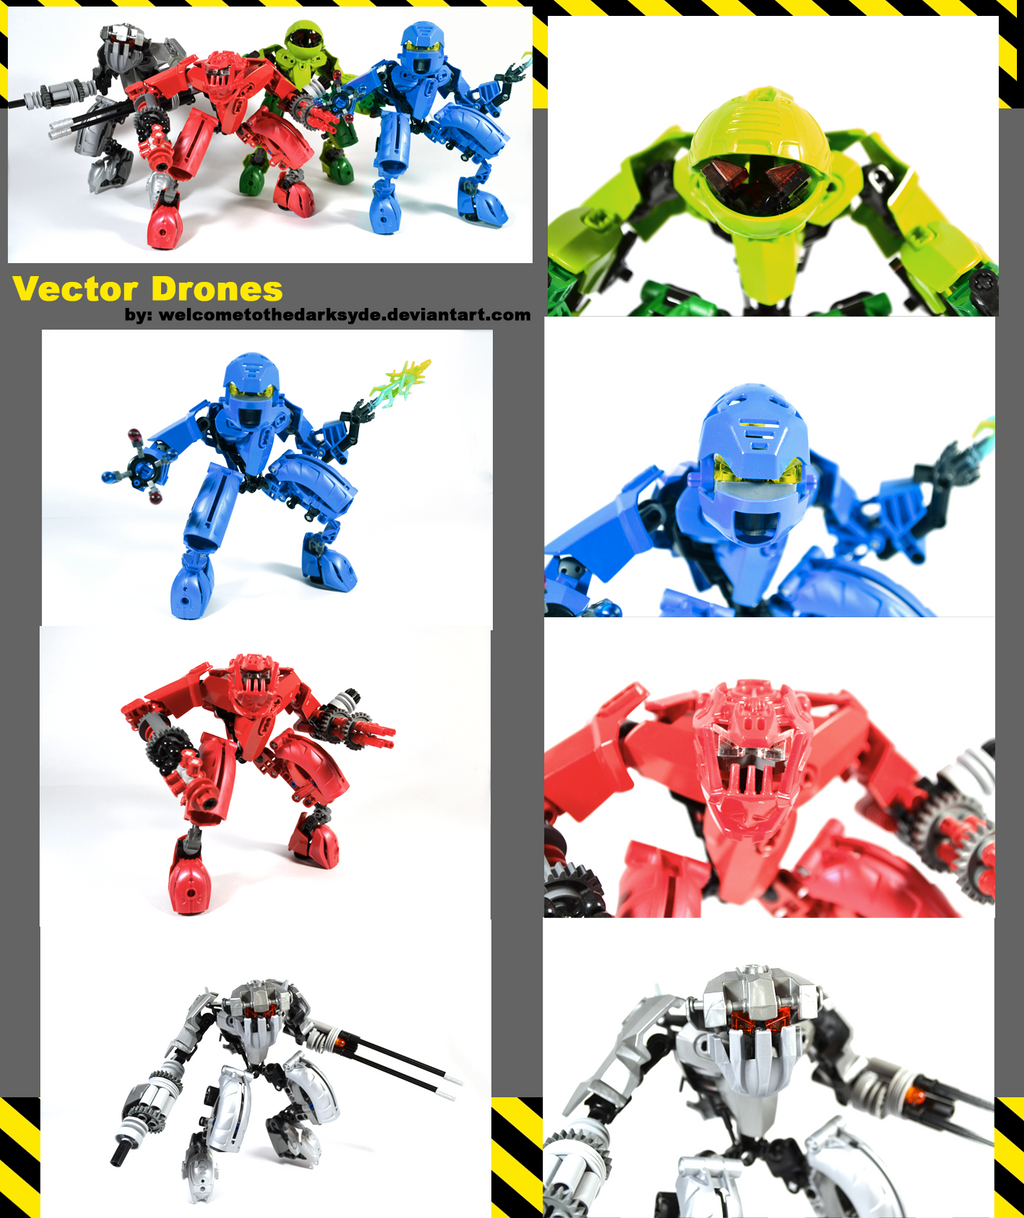 Vector Drones by welcometothedarksyde